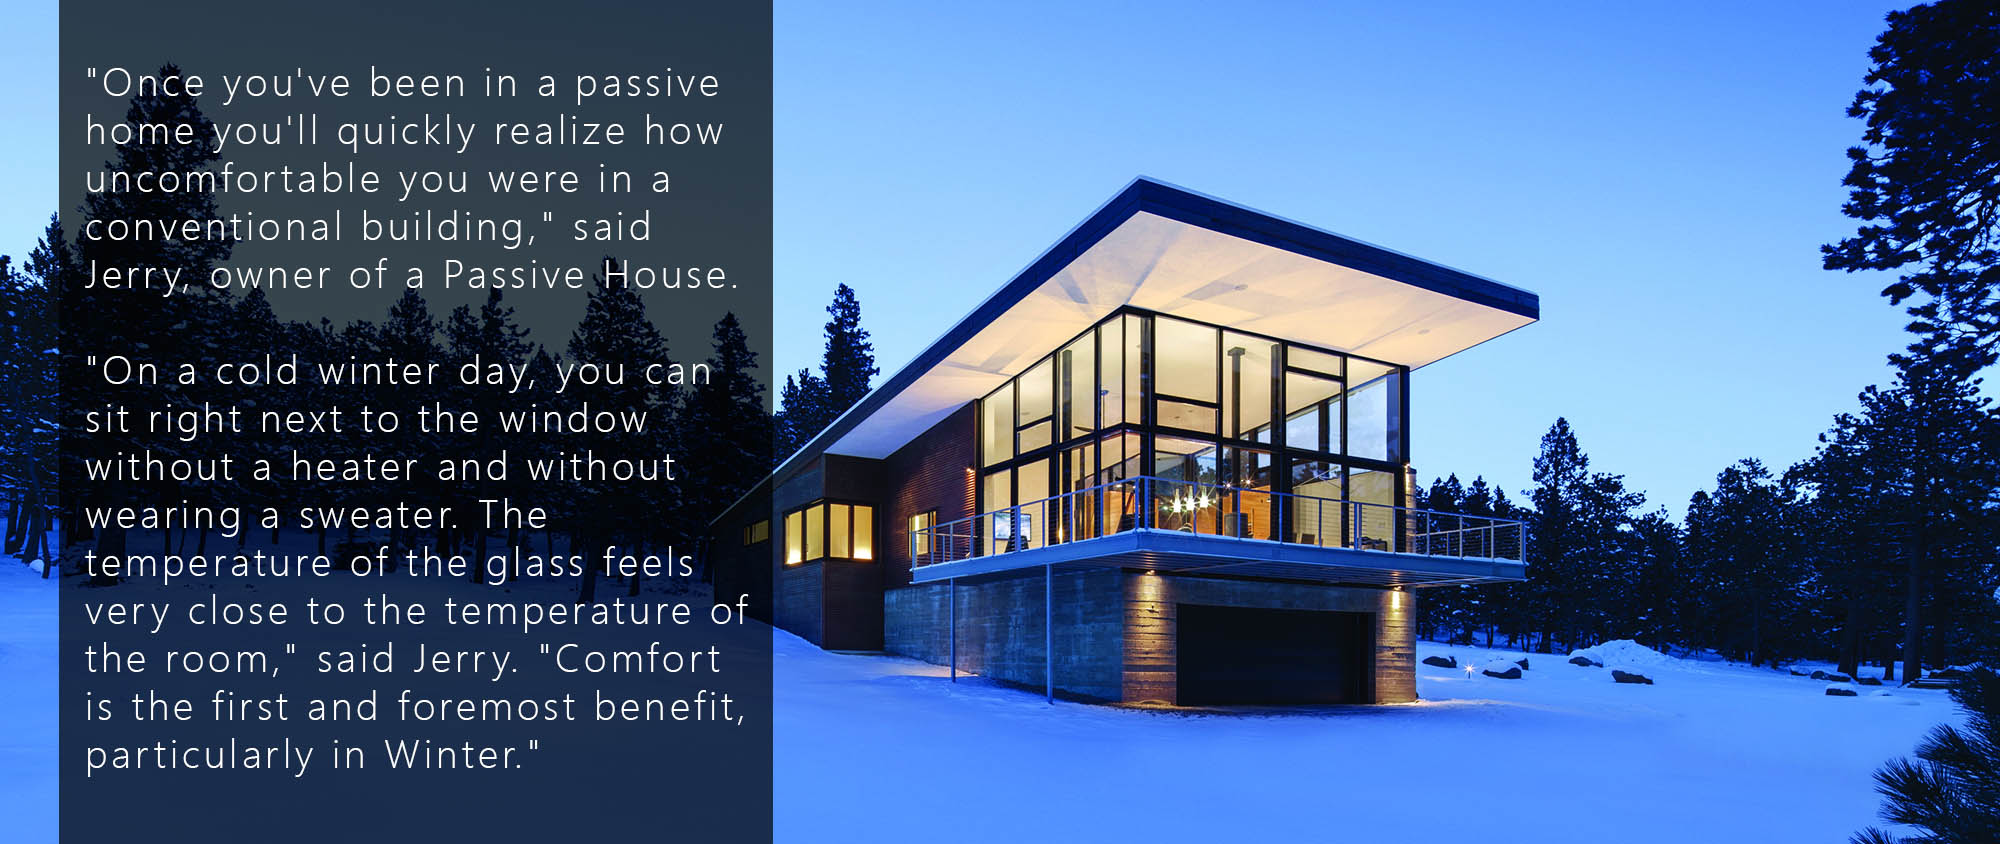 what is a passive home - Passive House Standard - Gambrick - NJ Passive House Builder